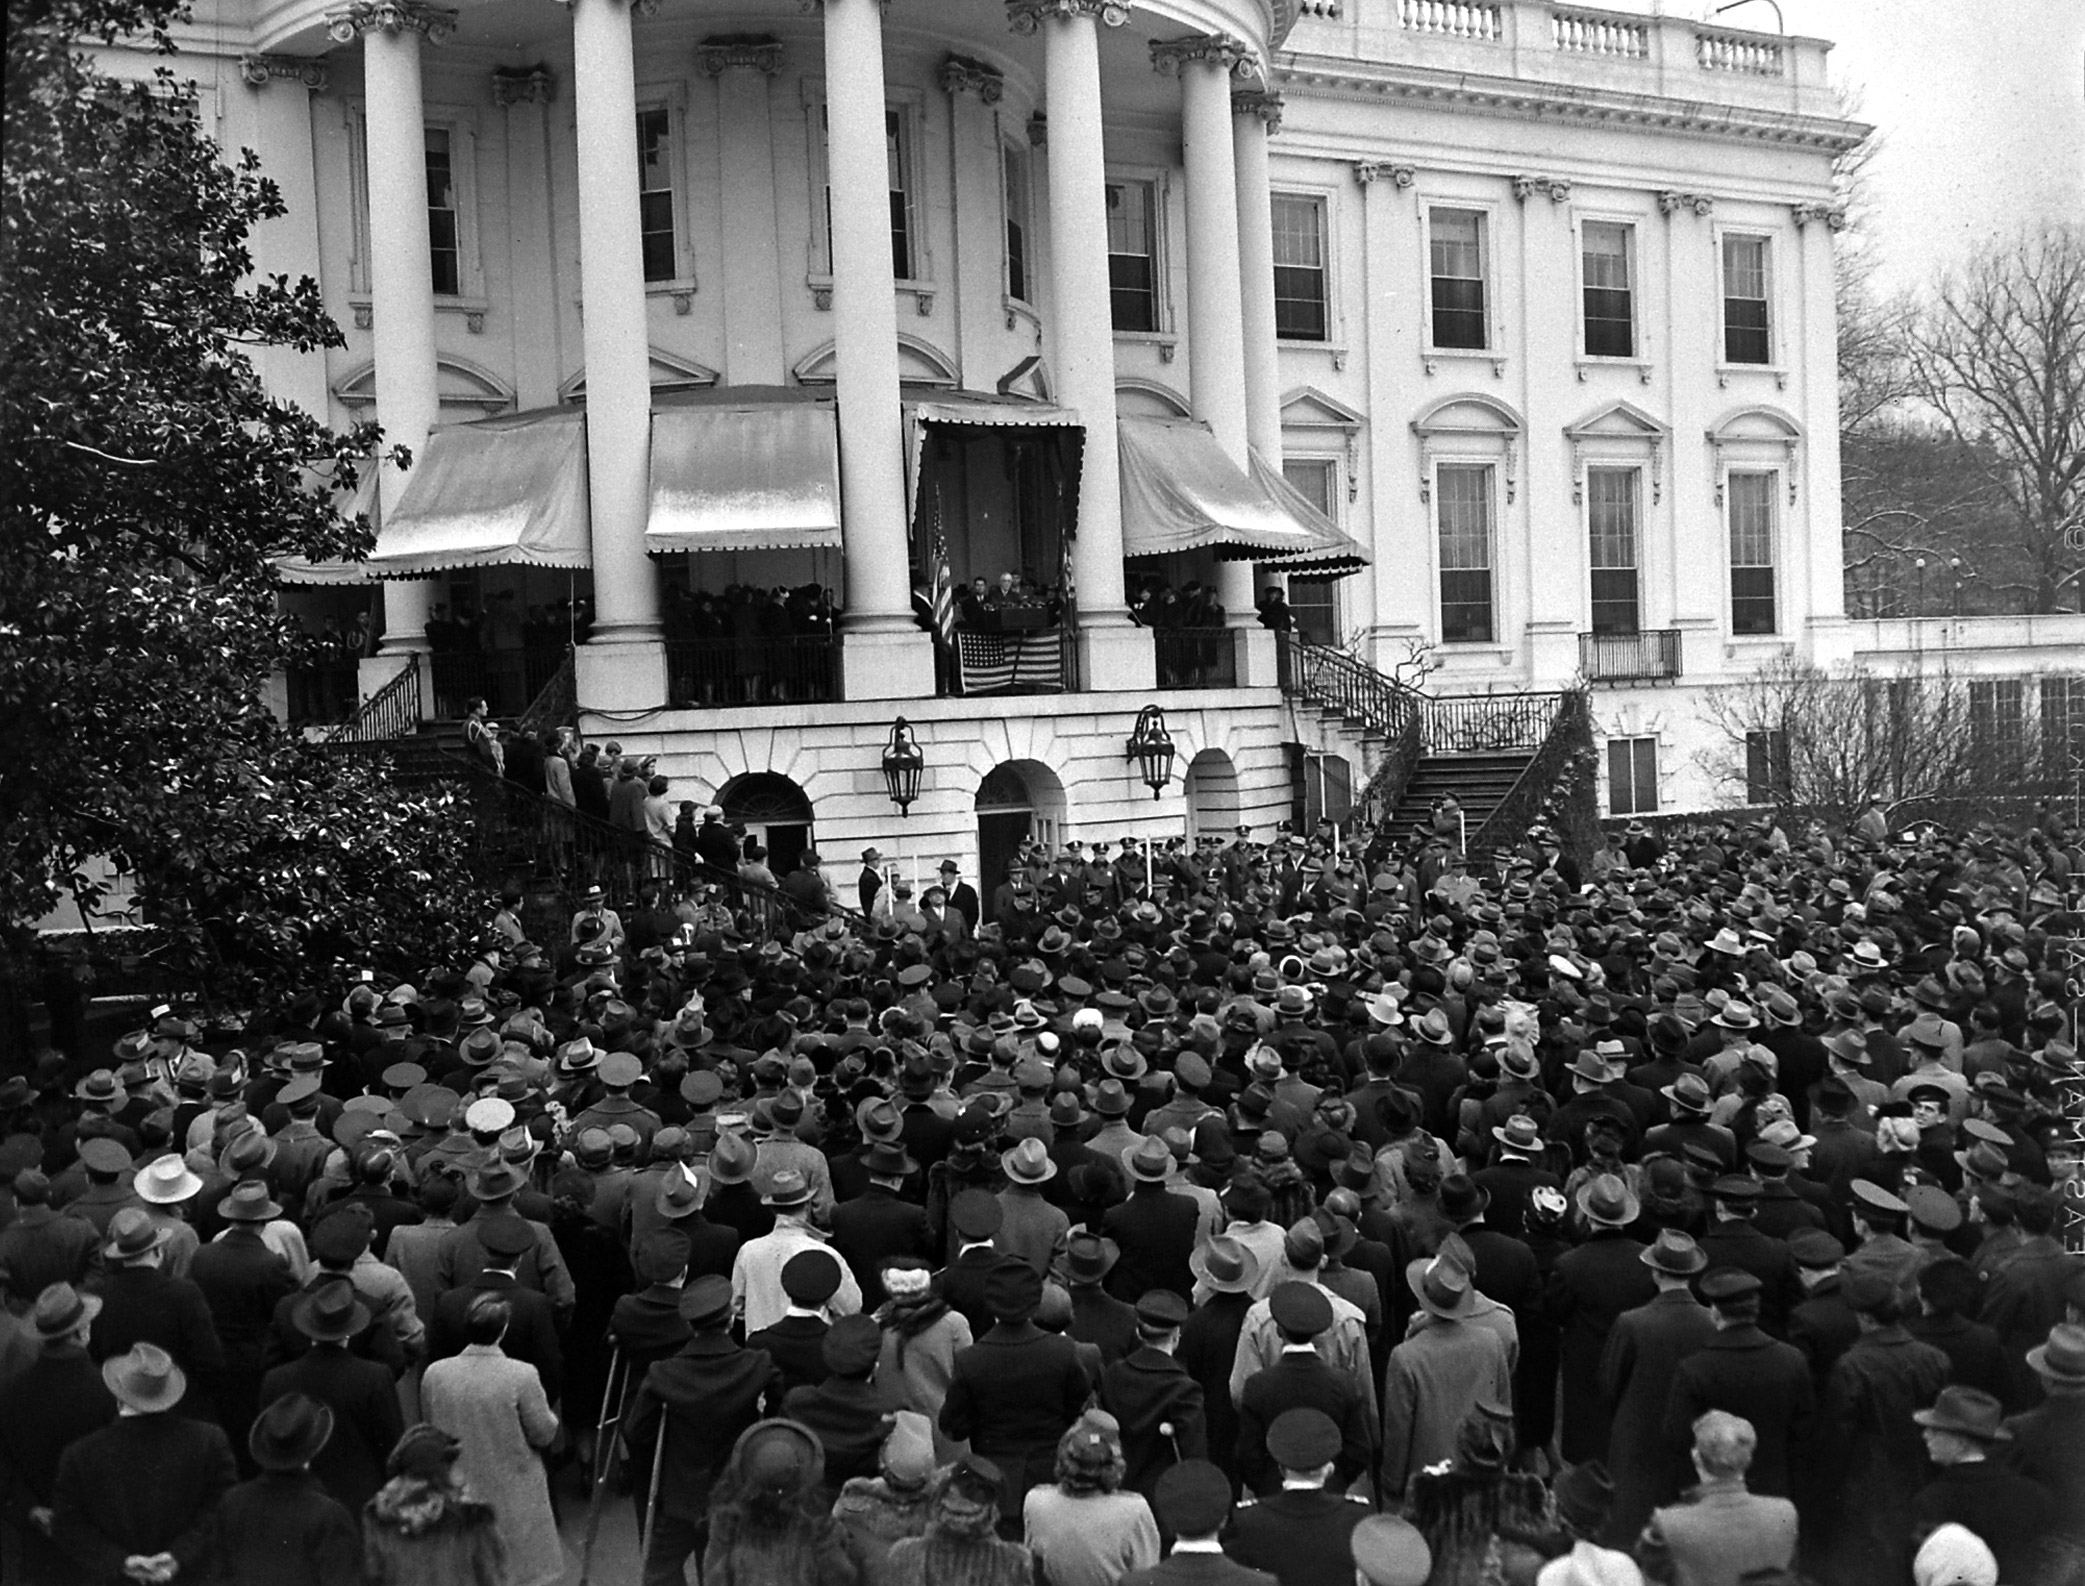 Fourth inauguration ceremony of President Franklin D. Roosevelt in 1945.